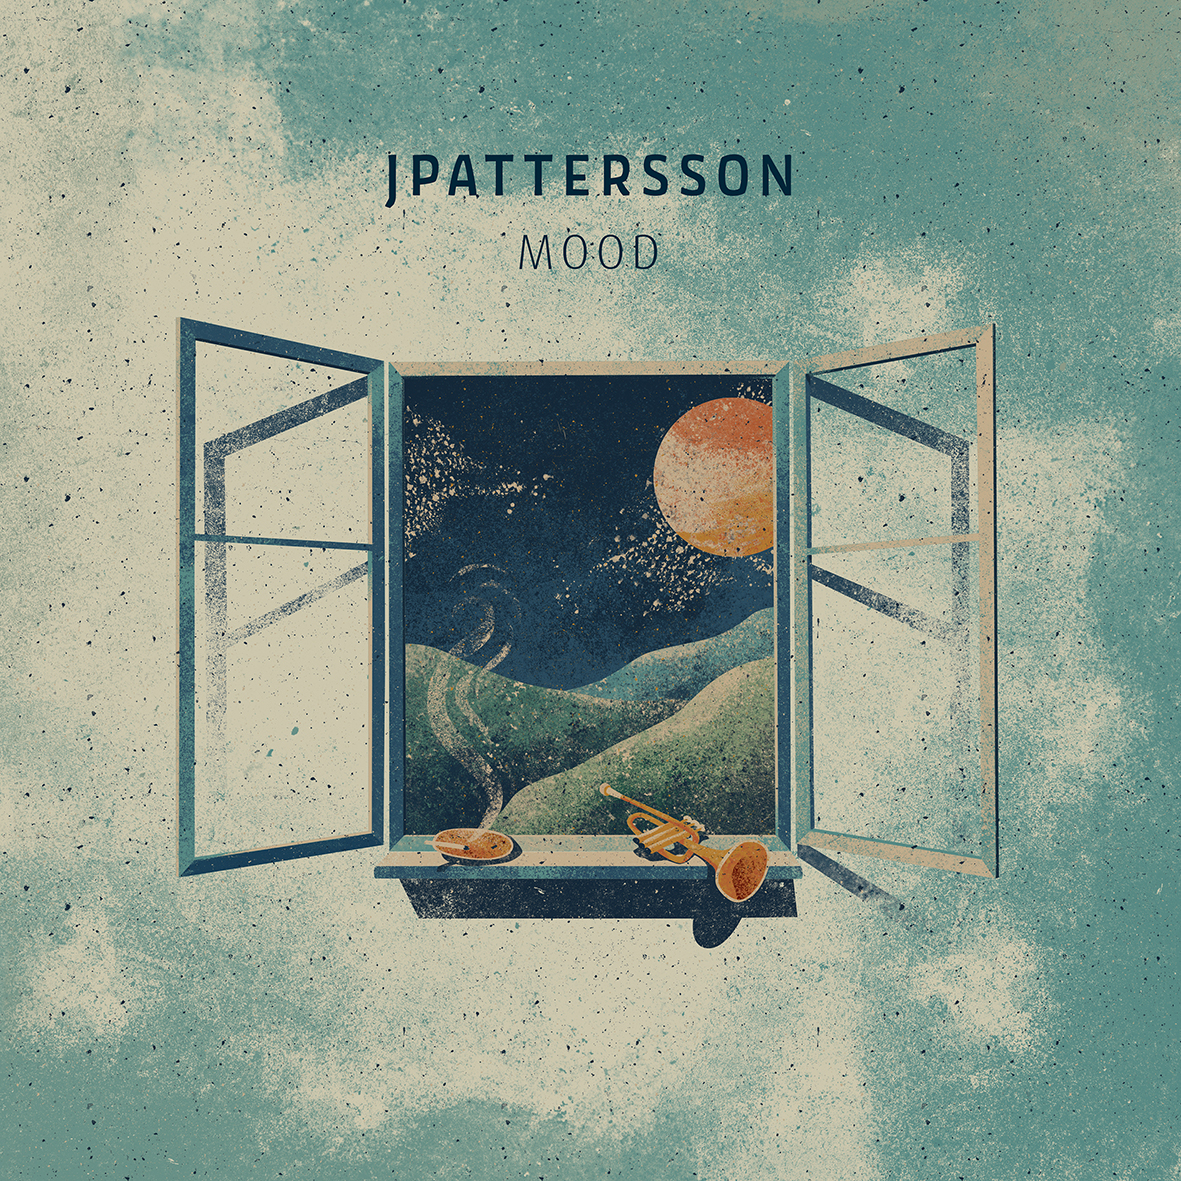 JPattersson Mood-Album_Cover